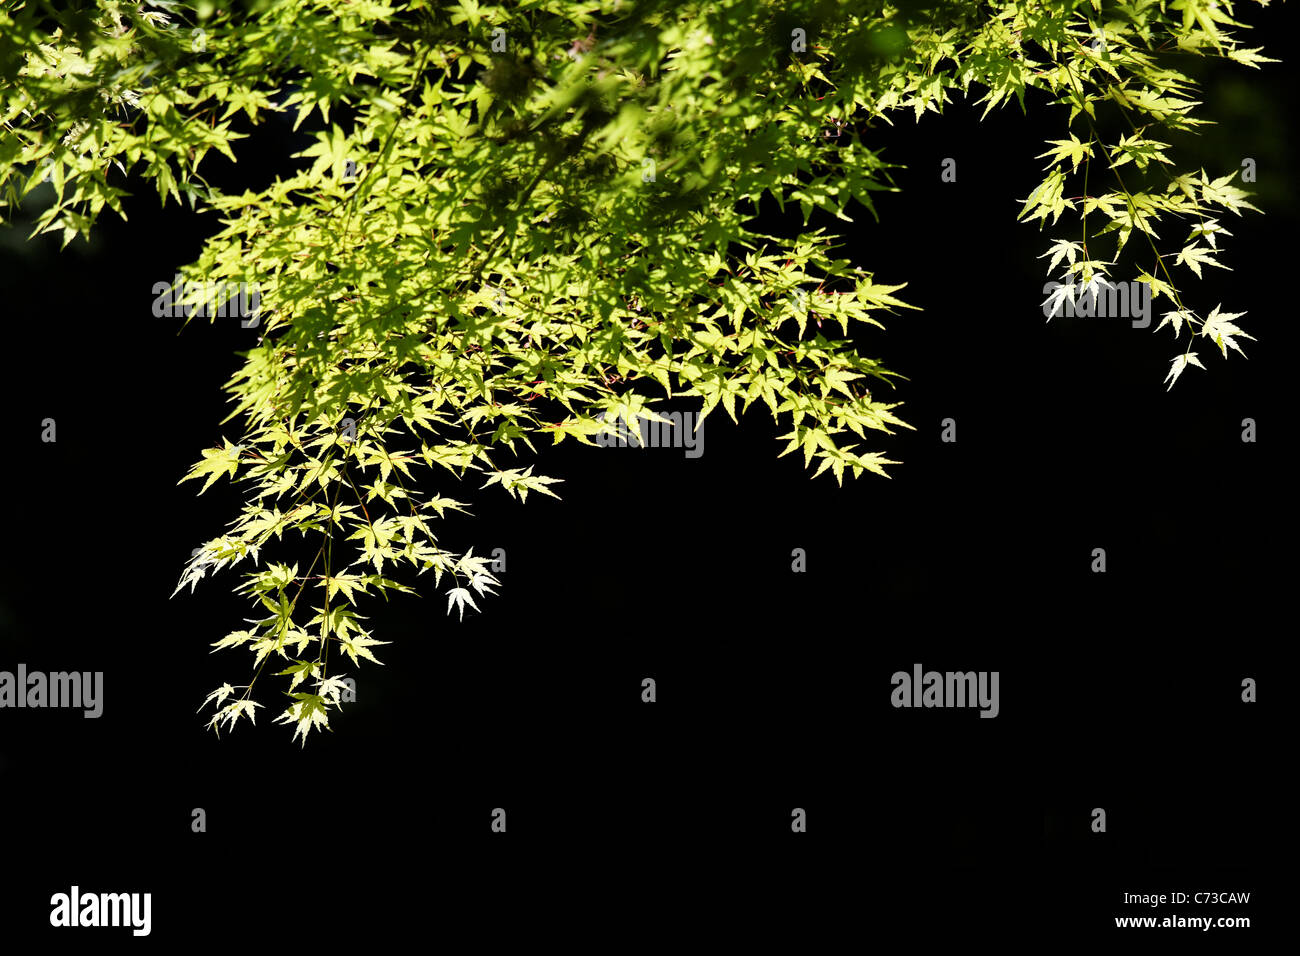 Branches and leaves of Japanese maple glow against dark background, Portland Japanese Garden, Portland, Oregon, - Stock Image